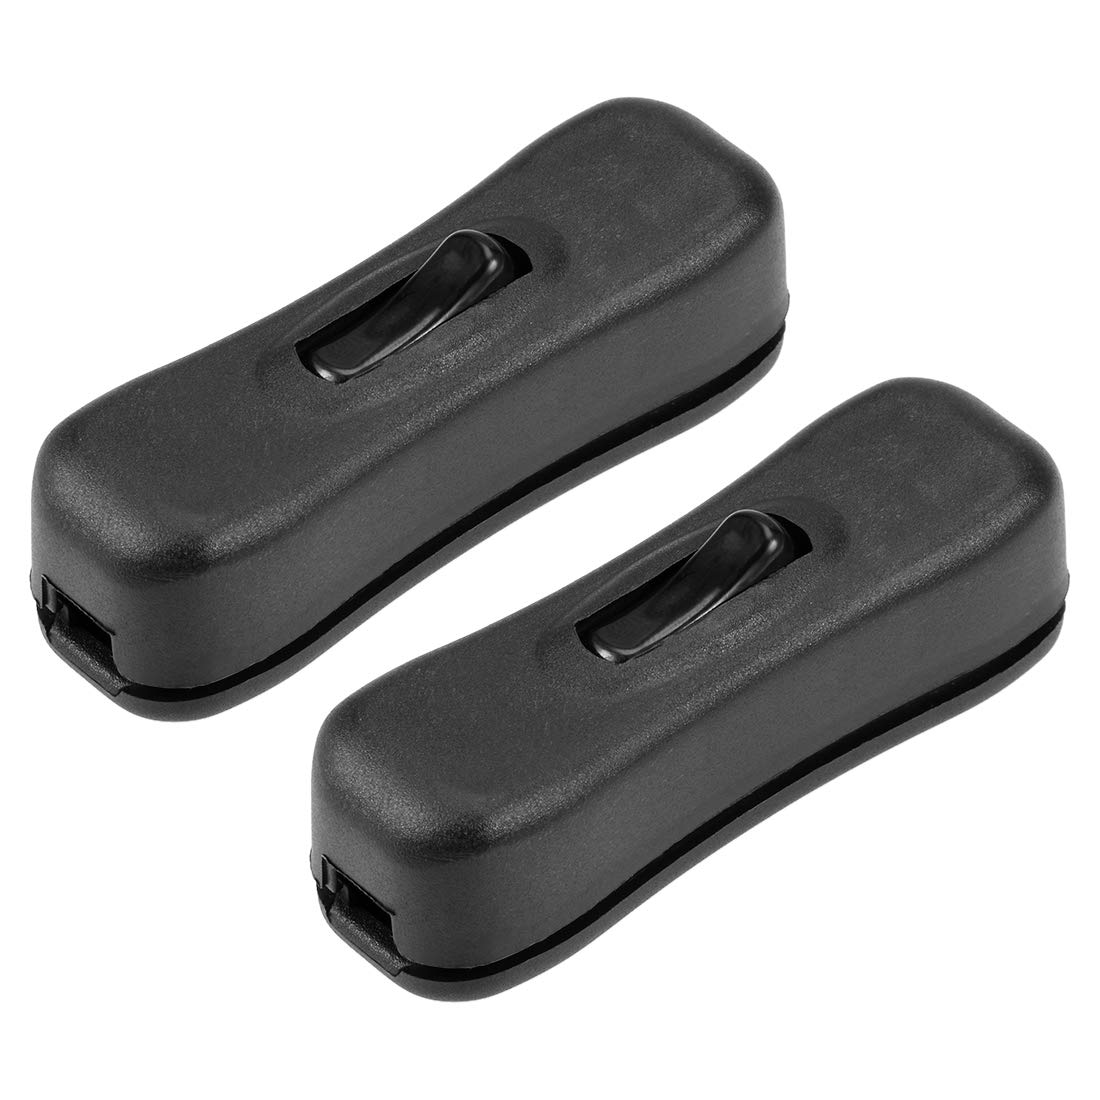 Pack of 2 uxcell/® Inline Cord Switch AC 250V 2A SPST Feed-Through Rocker Switch for Bedroom Table Lamp Desk Light Black